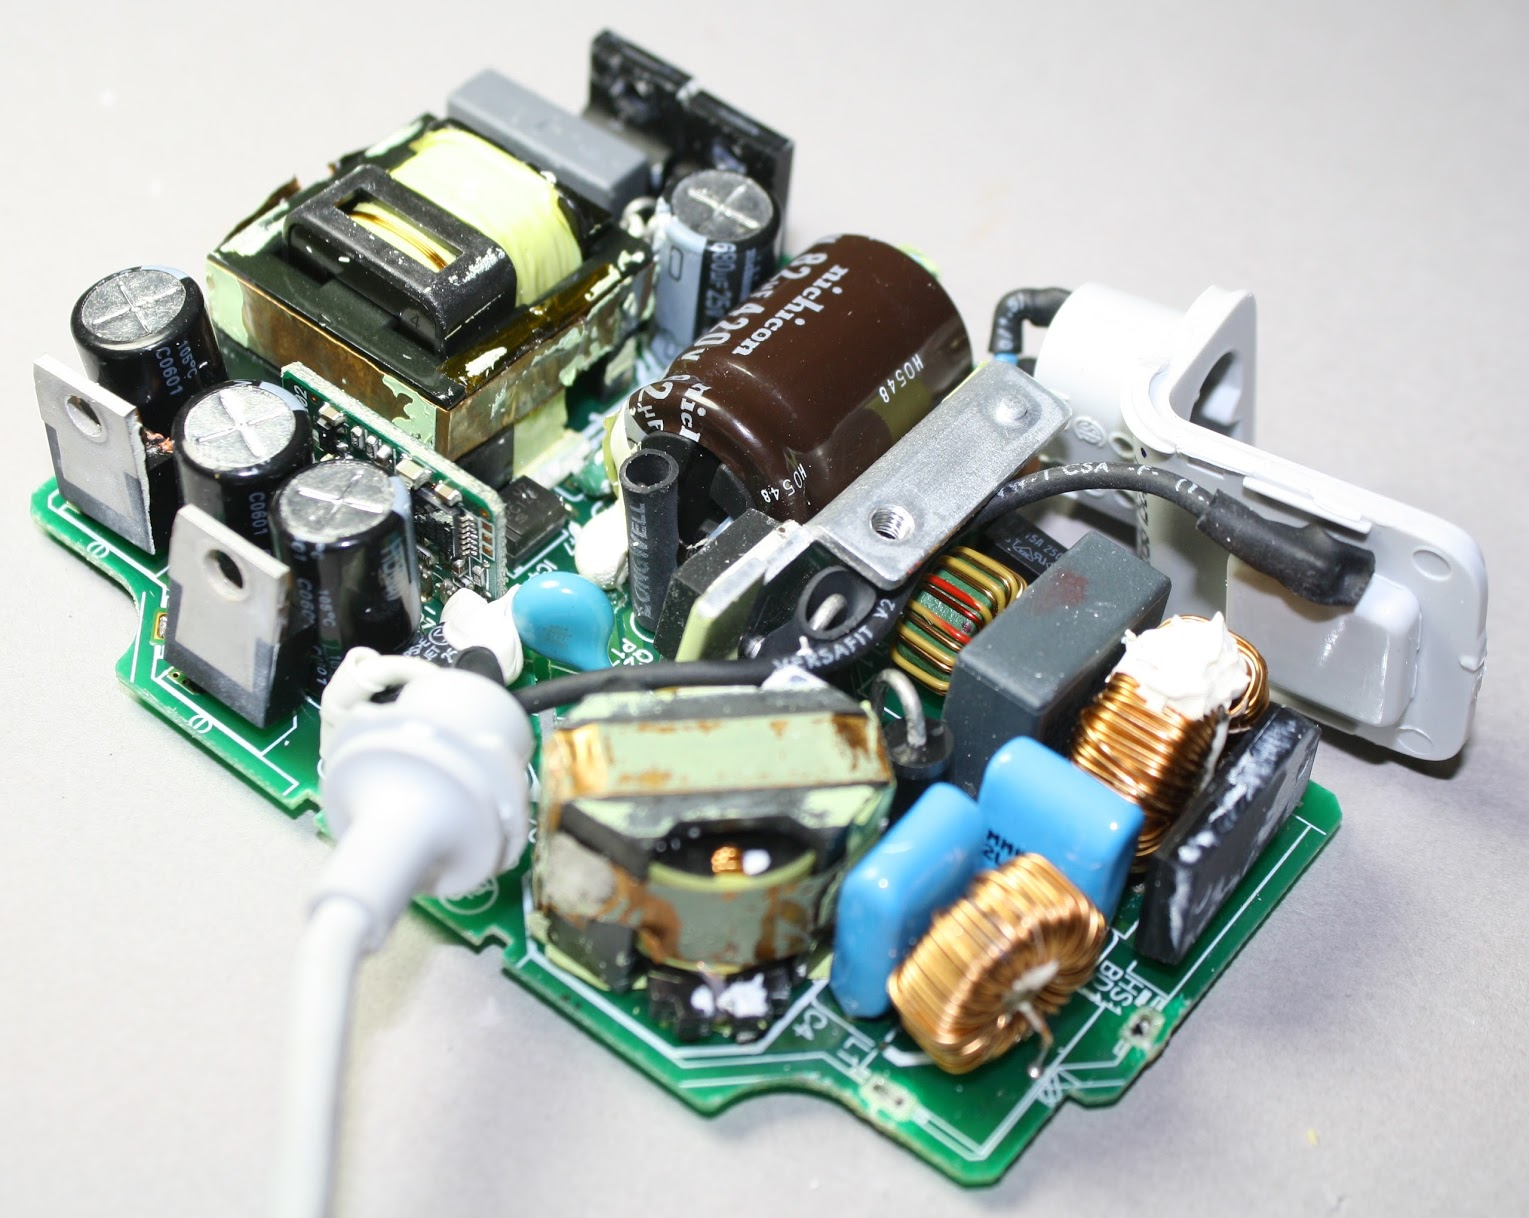 The fascinating MacBook charger teardown